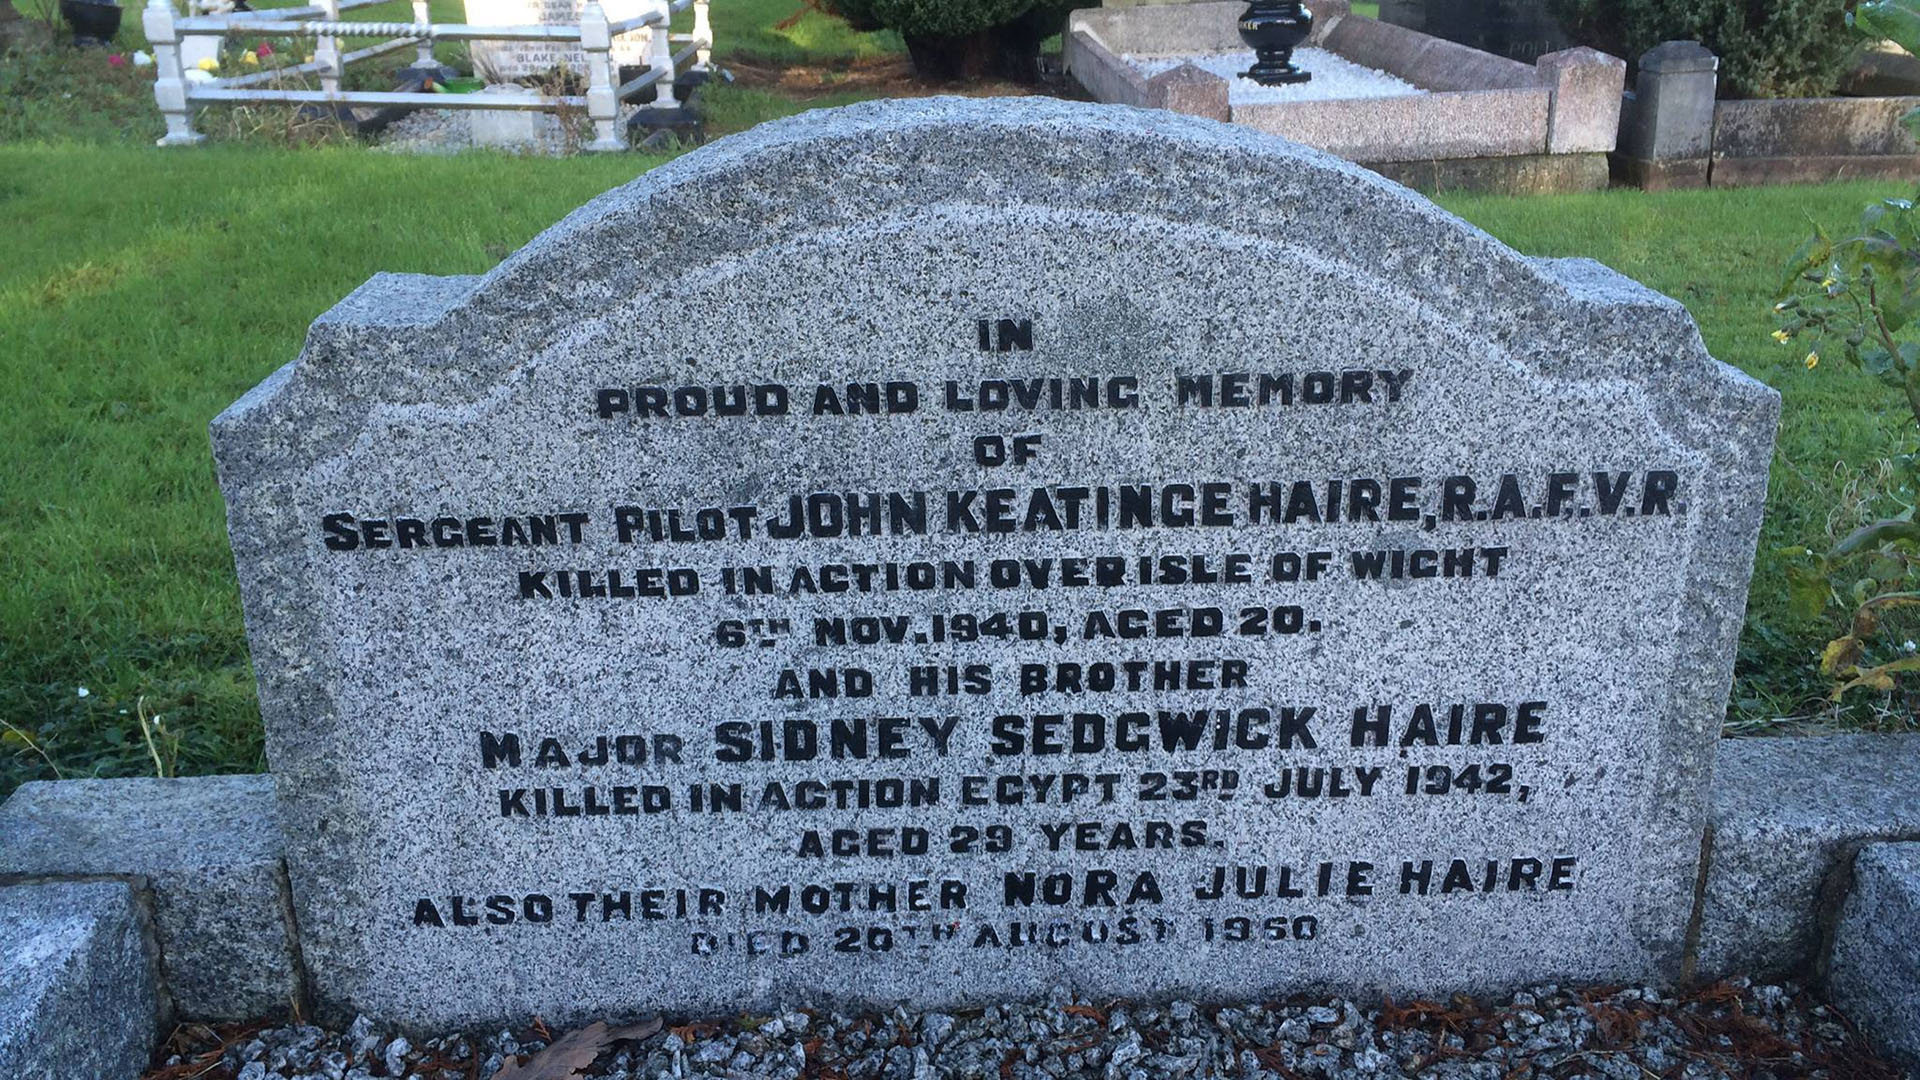 Grave of Sergeant John Keatinge Haire